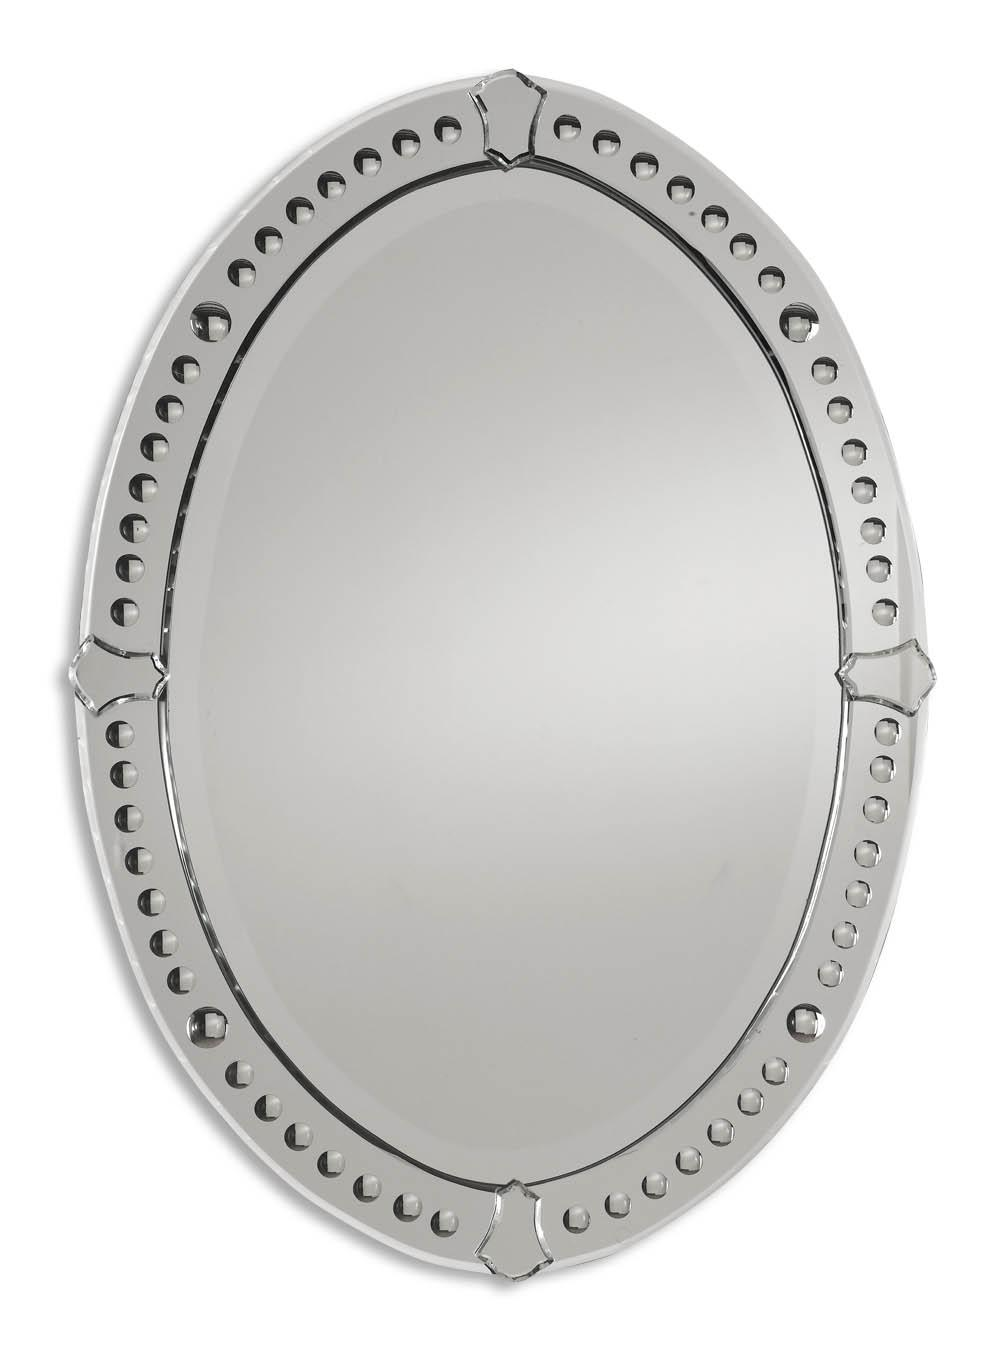 Uttermost Mirrors Graziano Oval Mirror - Item Number: 05003 B